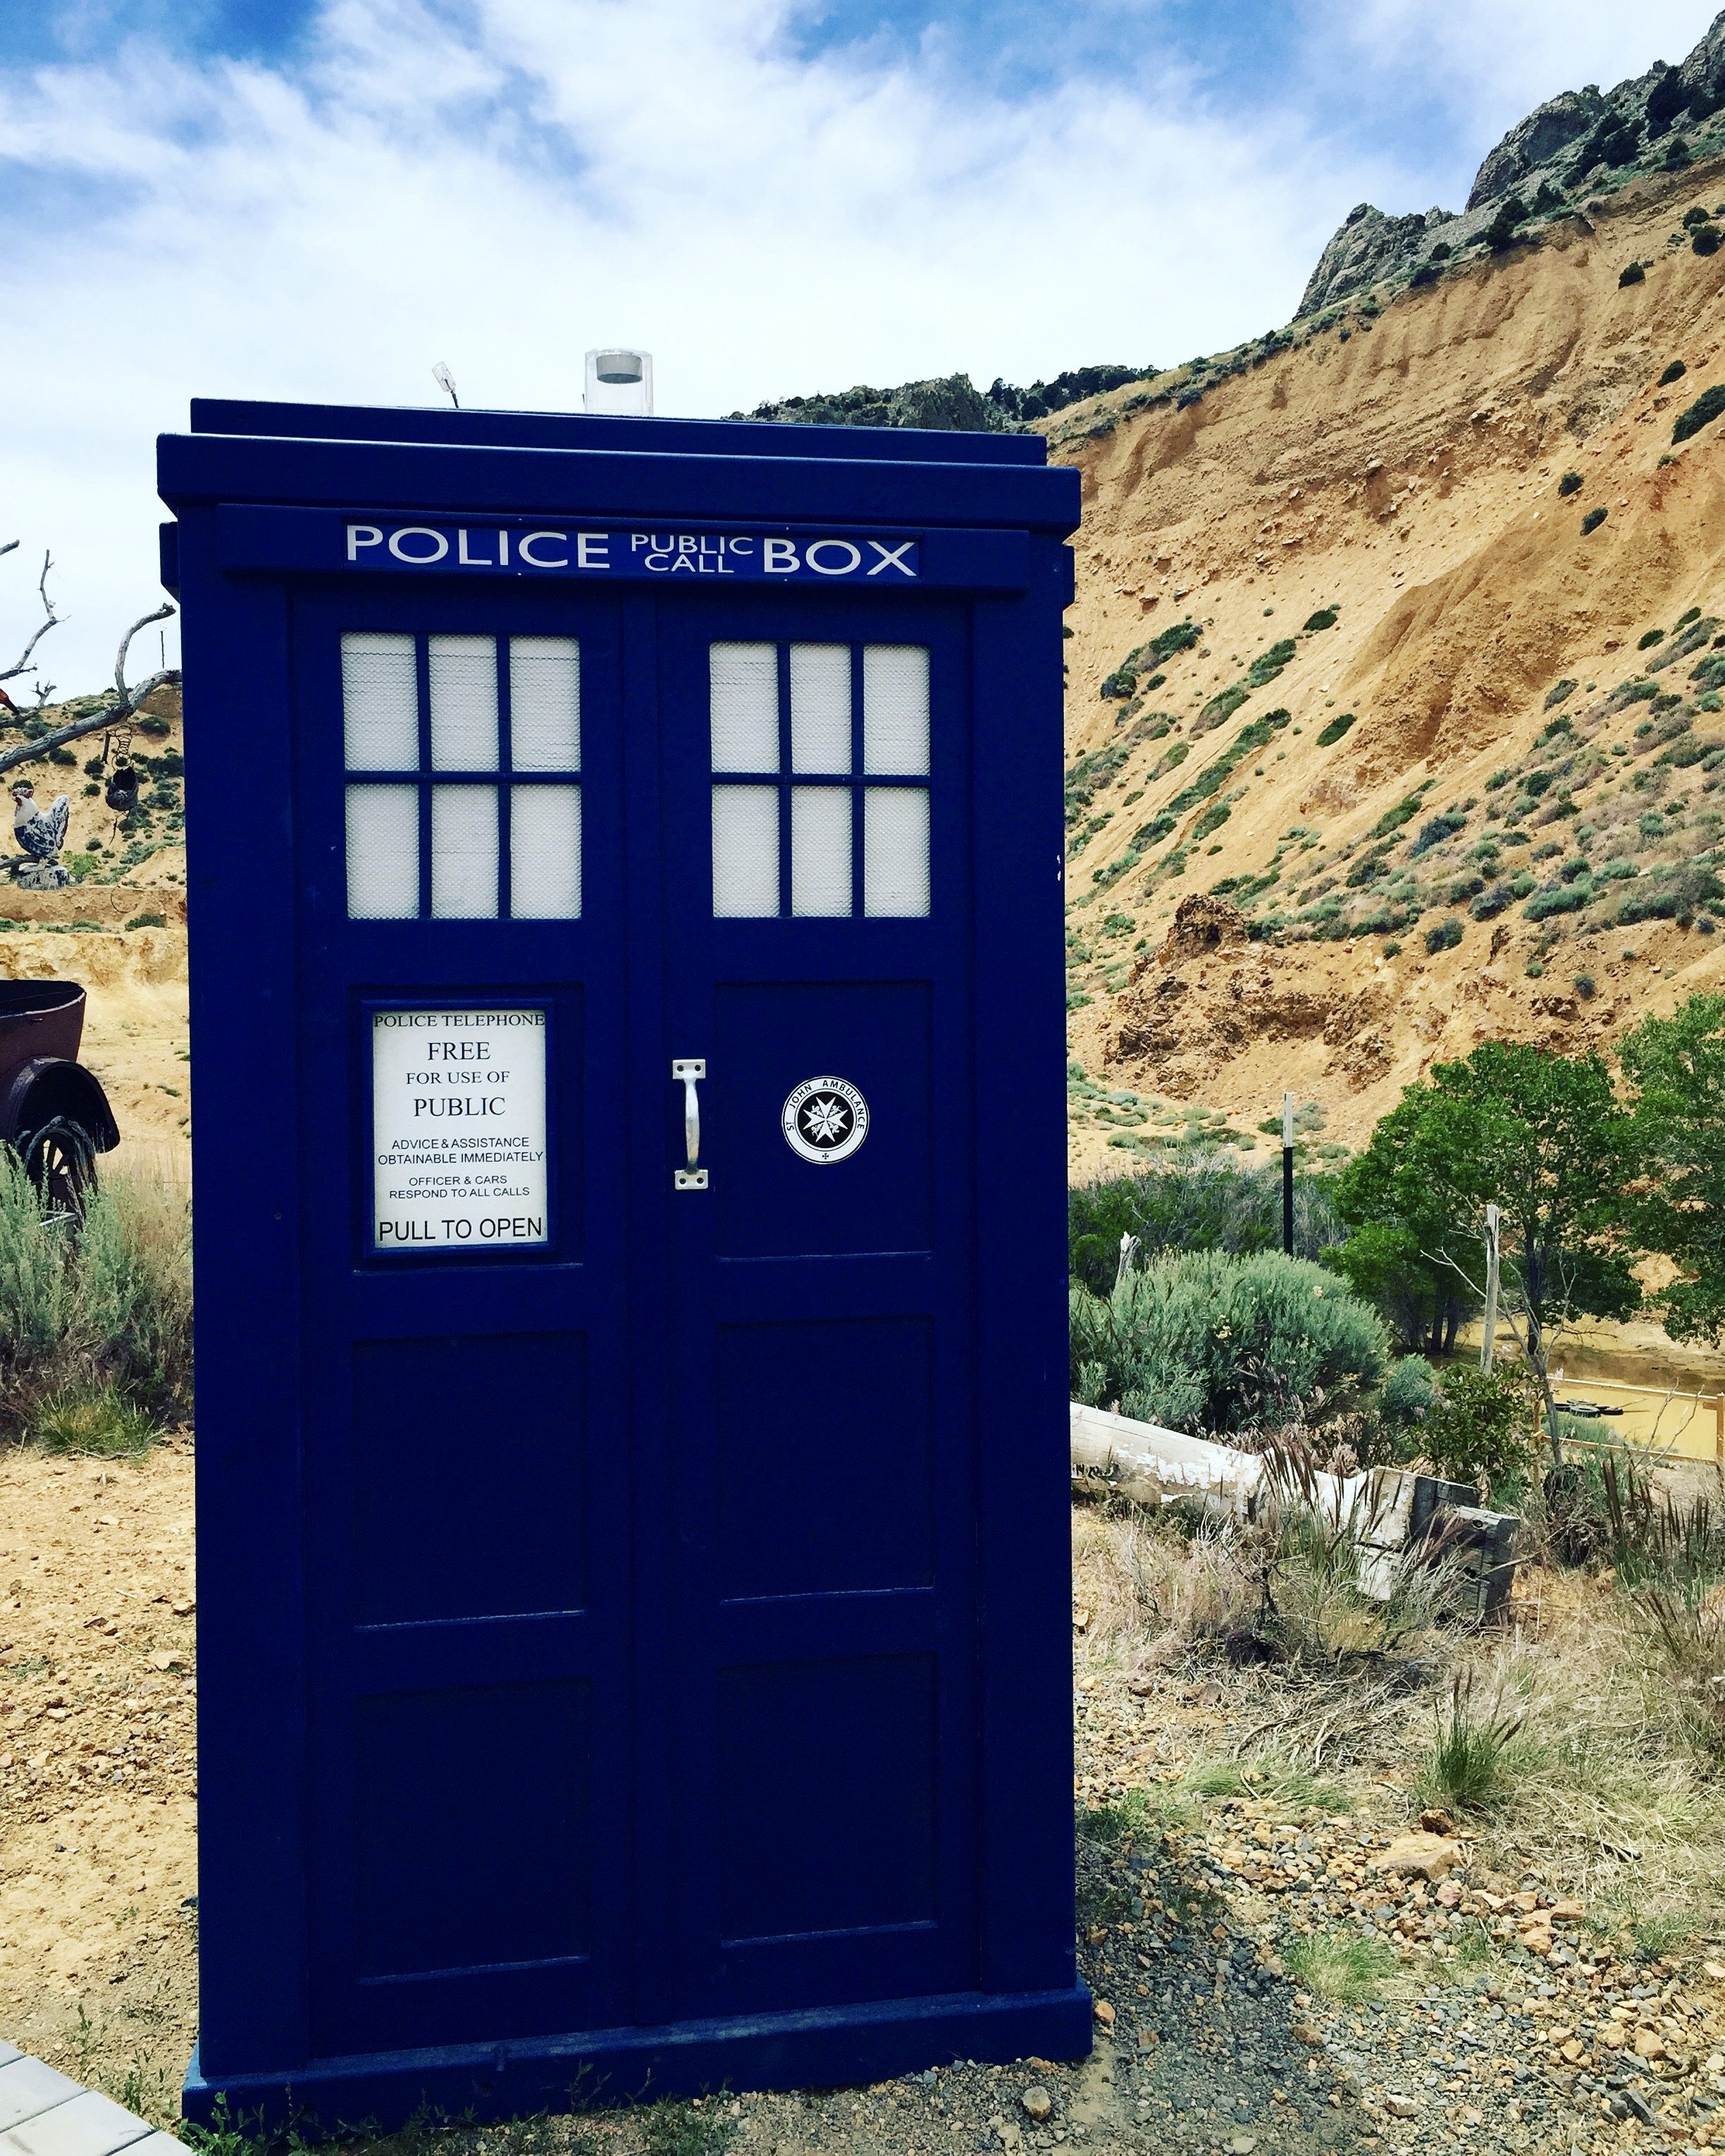 Tardis sighting in the desert! I heard the distinctive sounds of a gunfight underway in town, so the Doctor must have been in trouble already. #doctorwho #tardis #travel #nevada #virginiacity